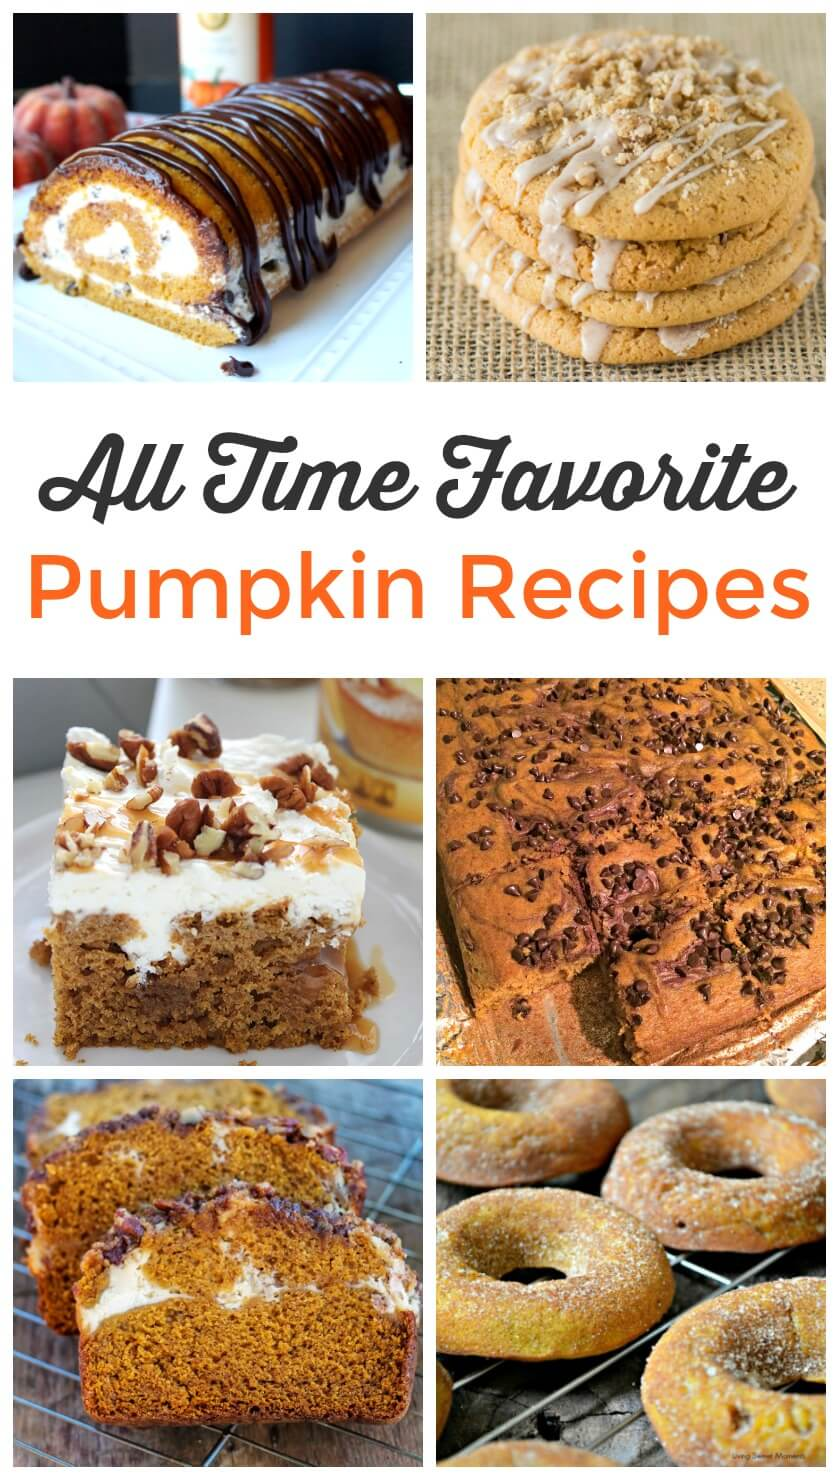 All Time Favorite Pumpkin Recipes